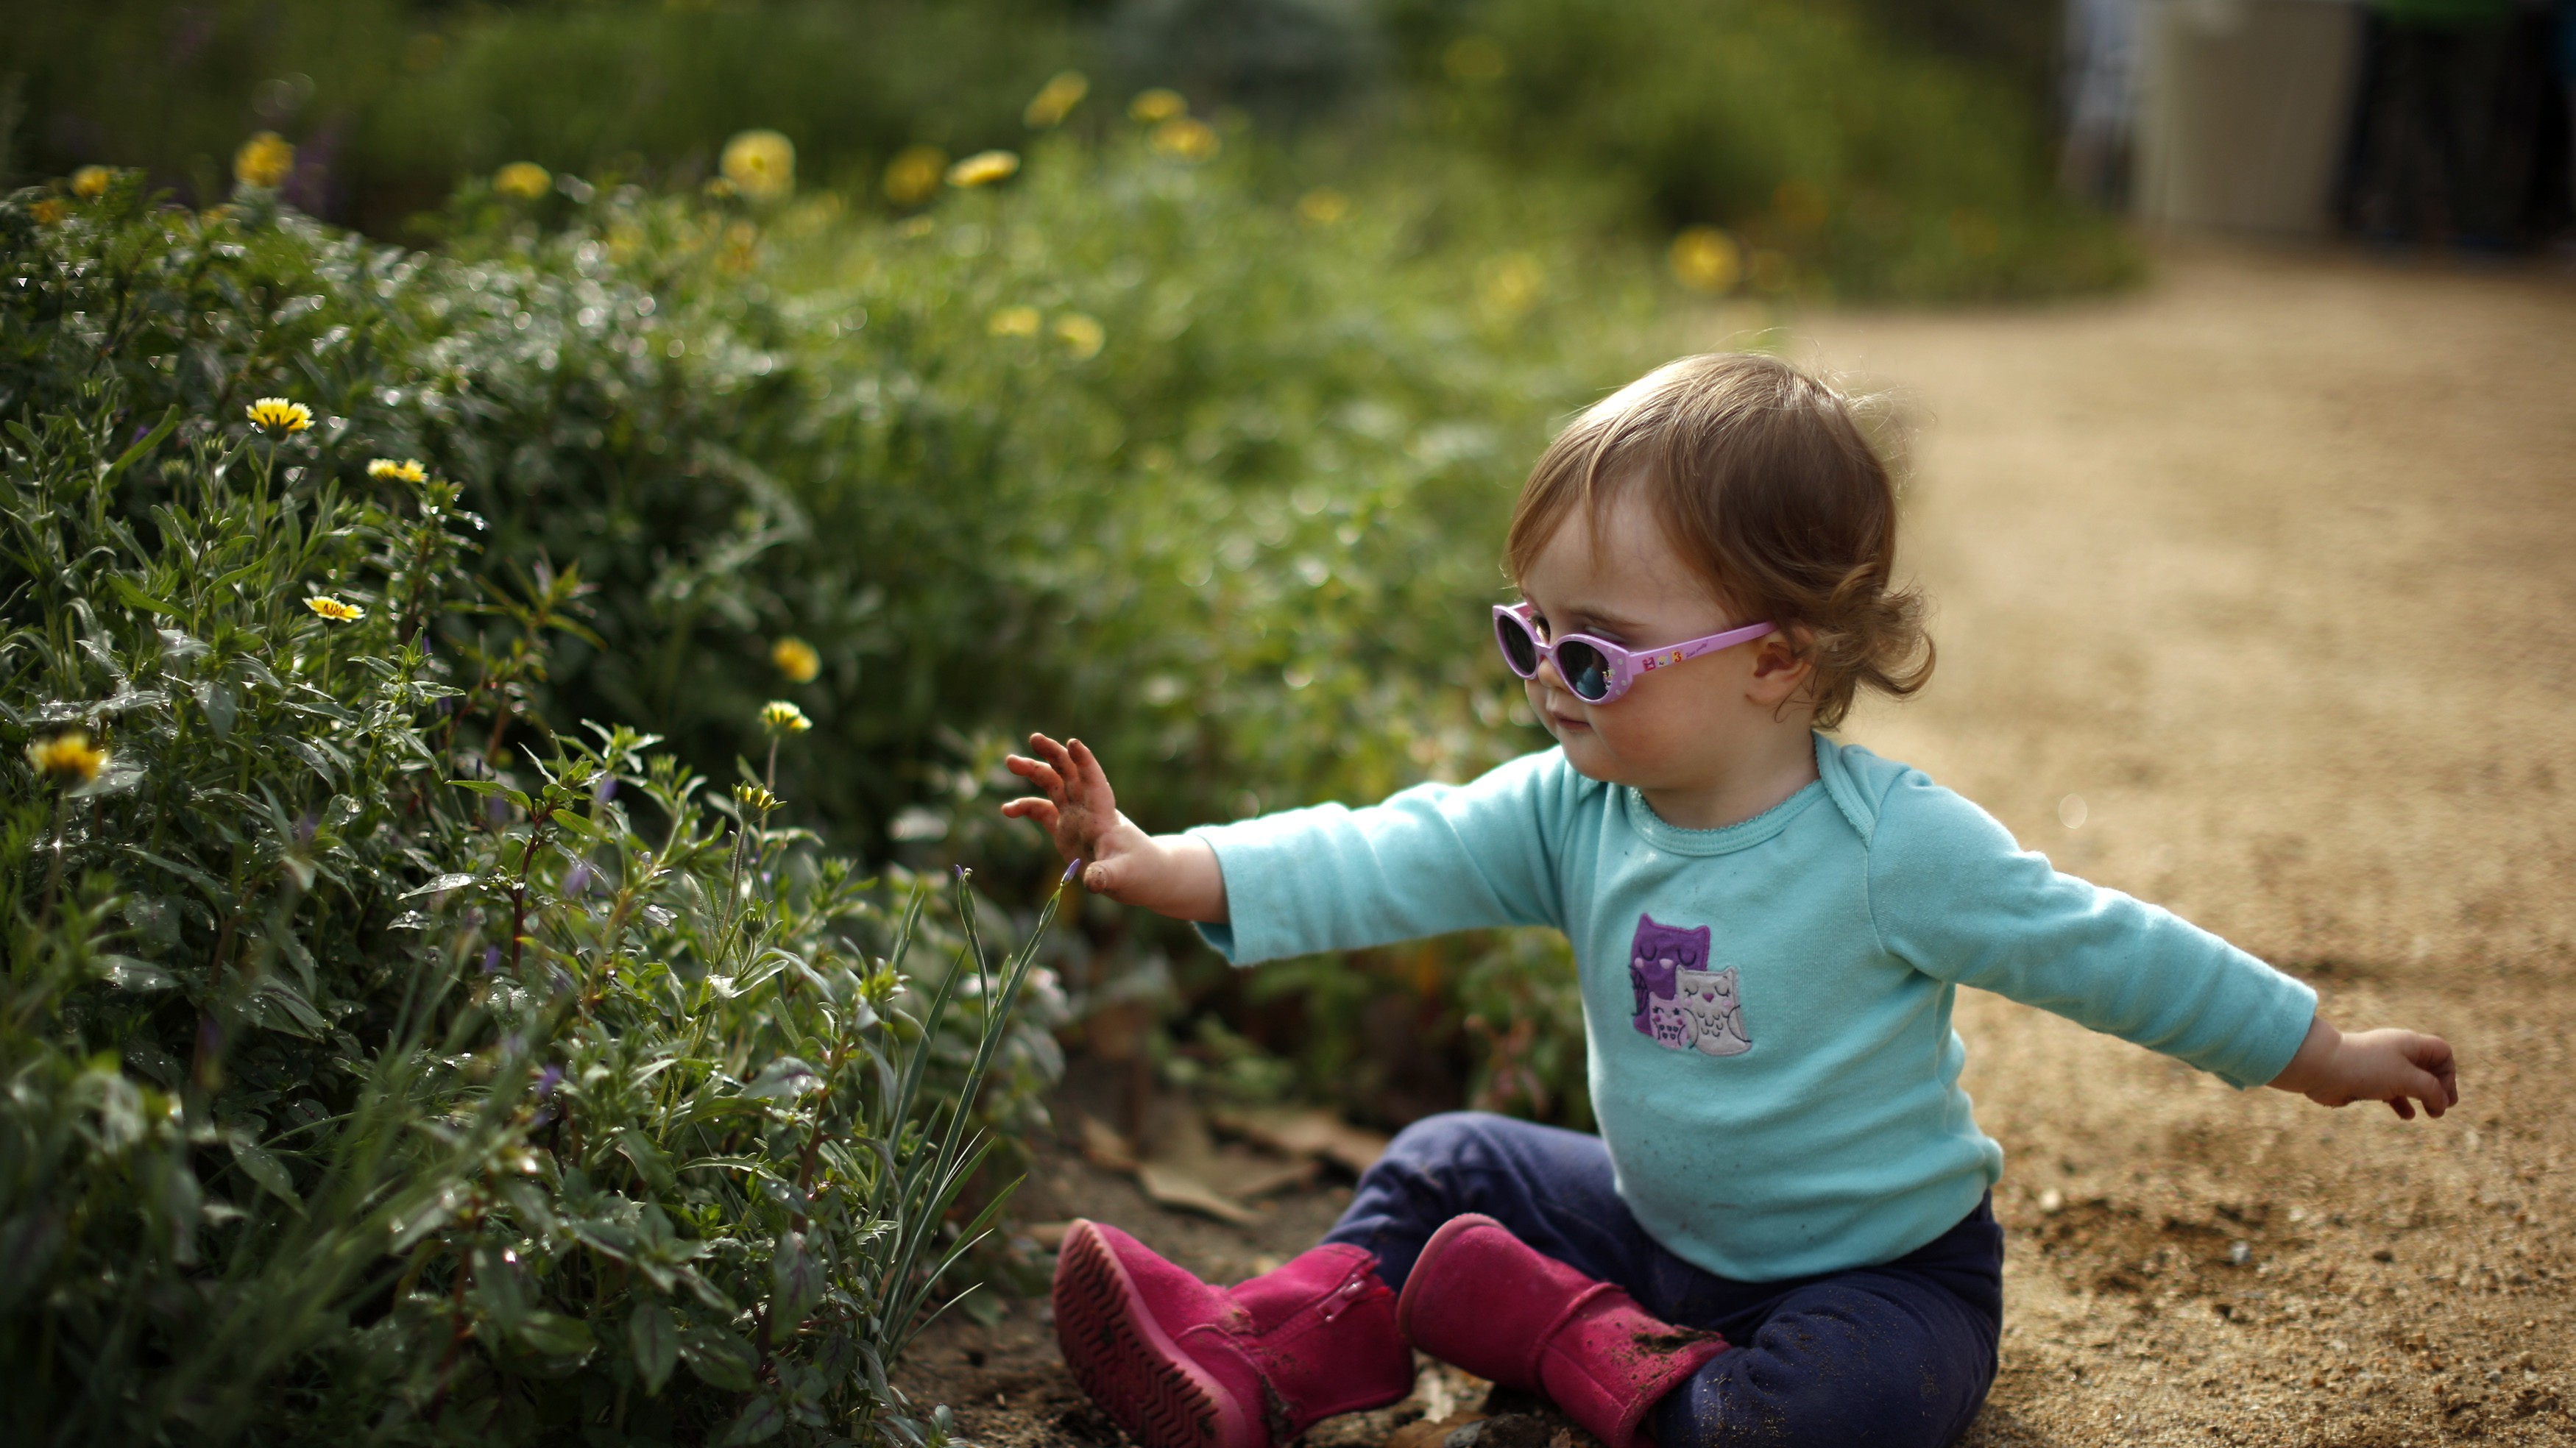 Fifteen-month-old Amelia Tompkins plays in the Pollinator Garden at the Natural History Museum in Los Angeles, California March 20, 2014. Spring officially began on Thursday in the northern hemisphere, and is known as both the spring or vernal equinox. REUTERS/Lucy Nicholson (UNITED STATES - Tags: SOCIETY TRAVEL ENVIRONMENT) - RTR3HYJY